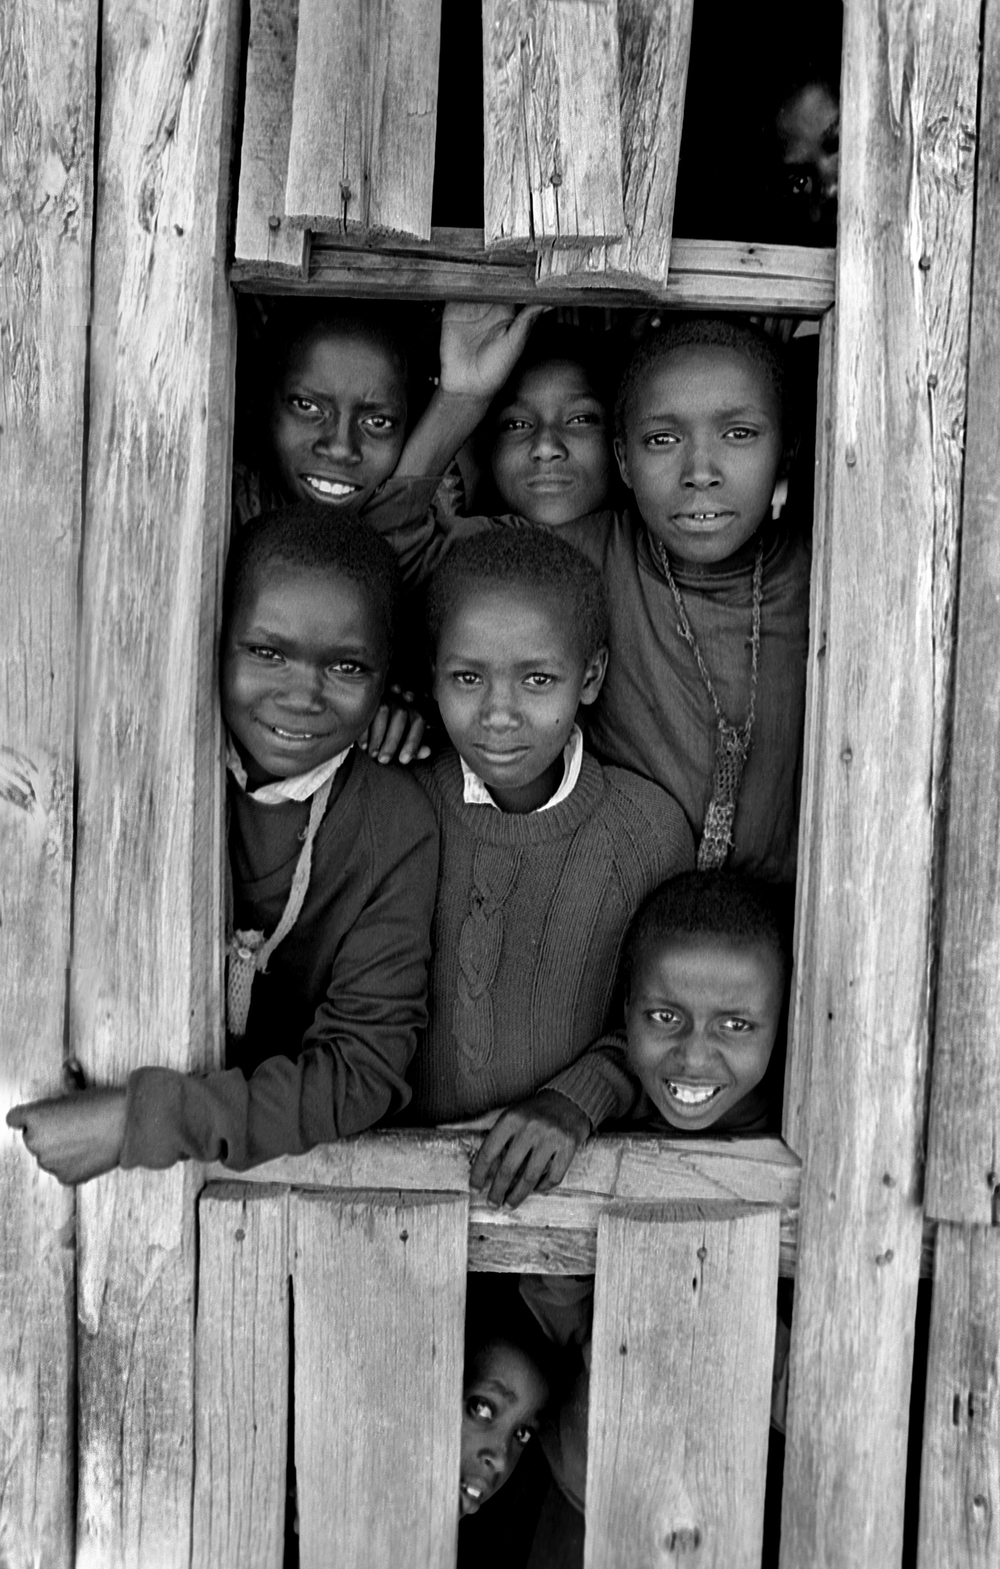 Primary school, Nakuru, Kenya